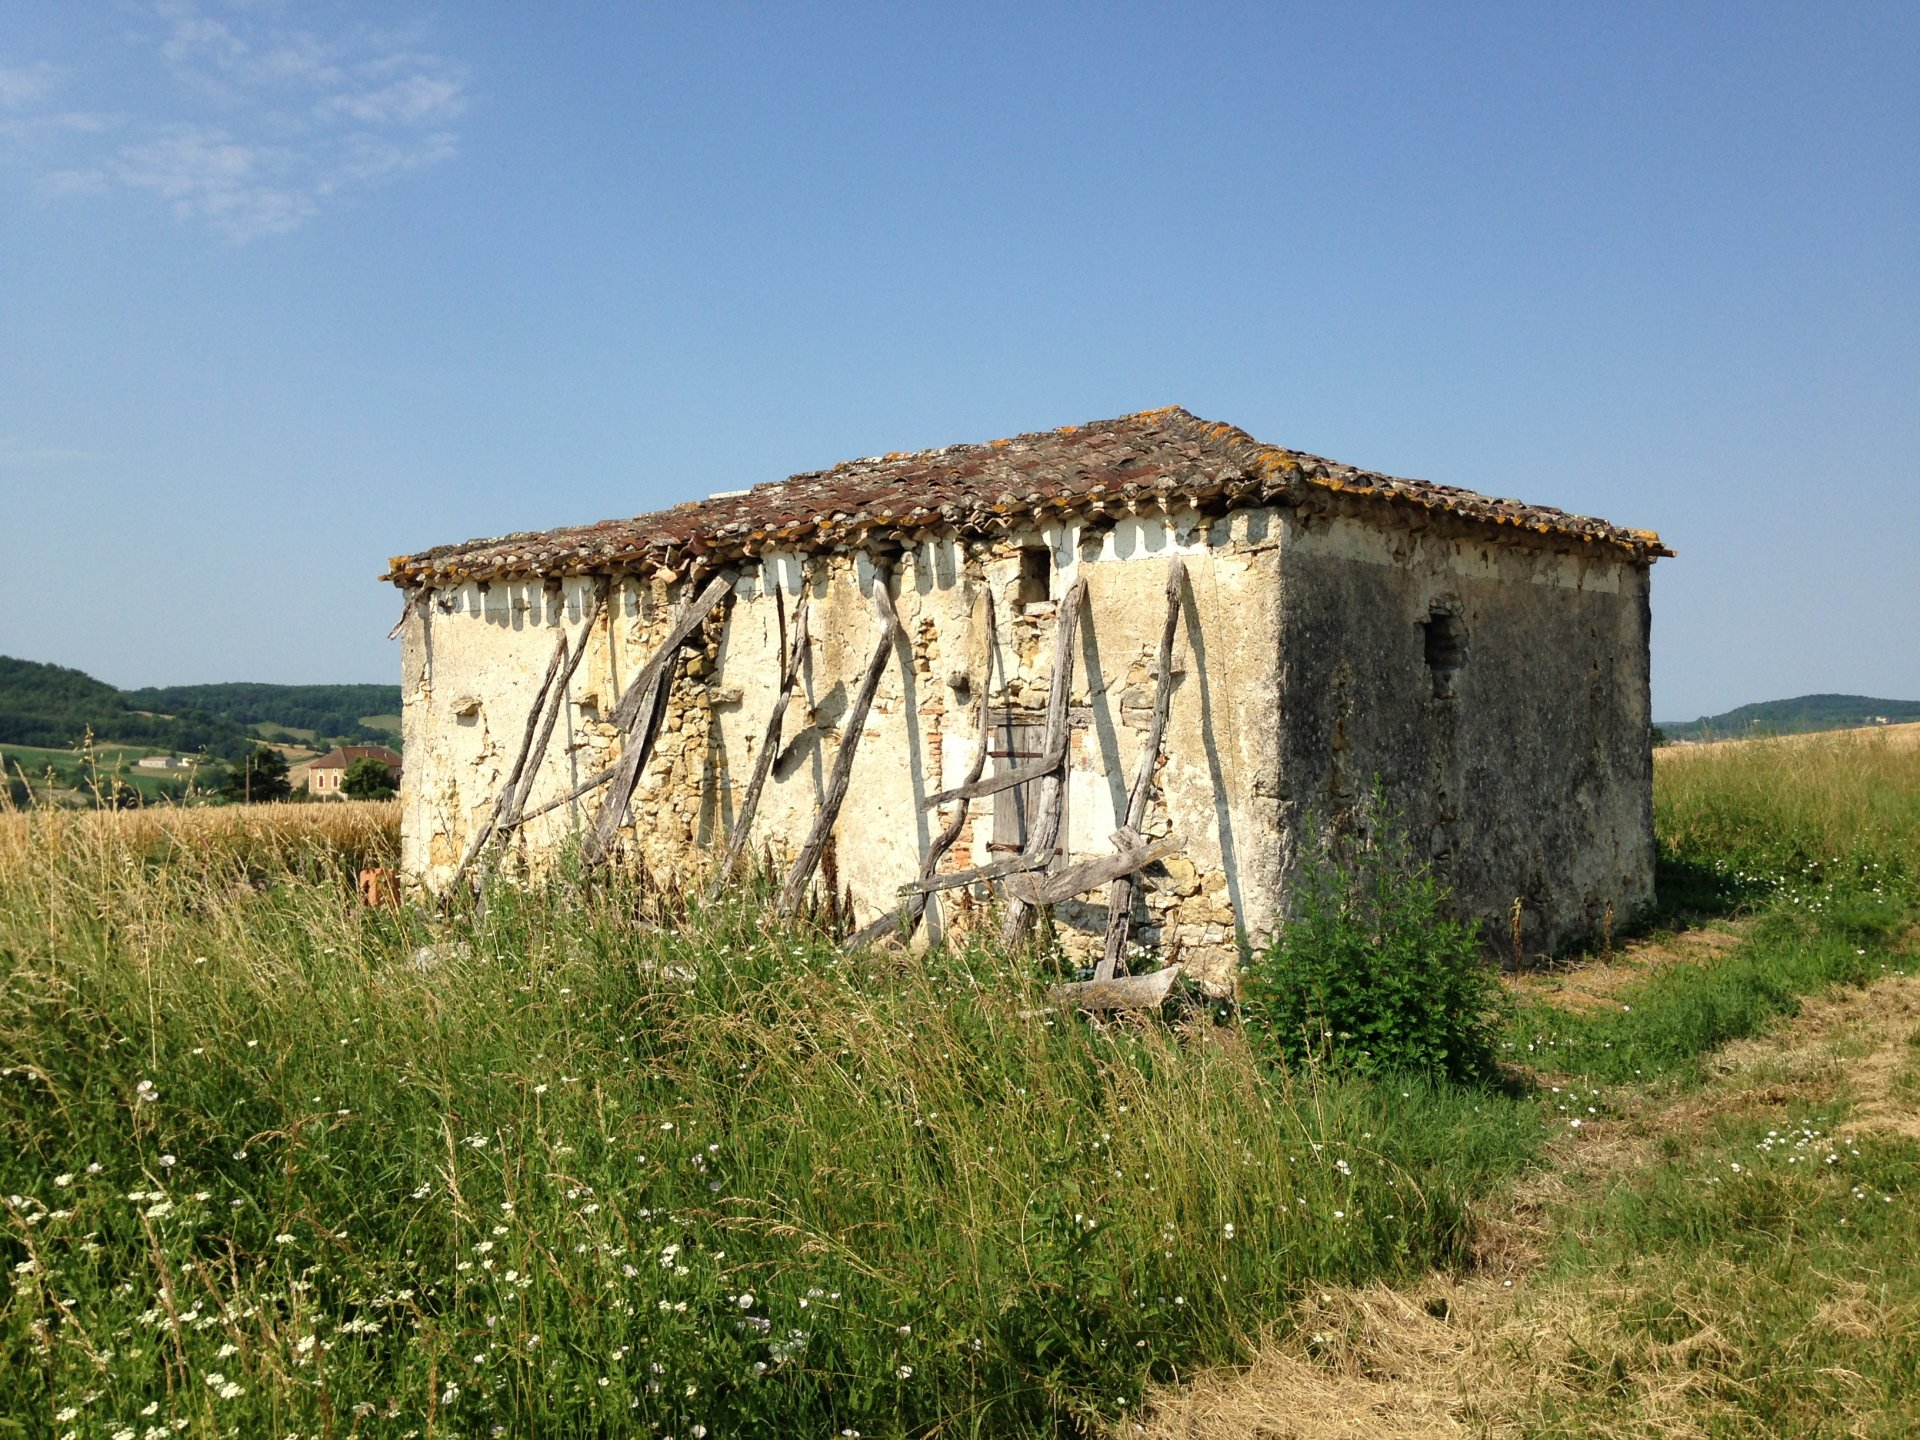 FABULOUS RENOVATION PROJECT in the heart of the Quercy countryside